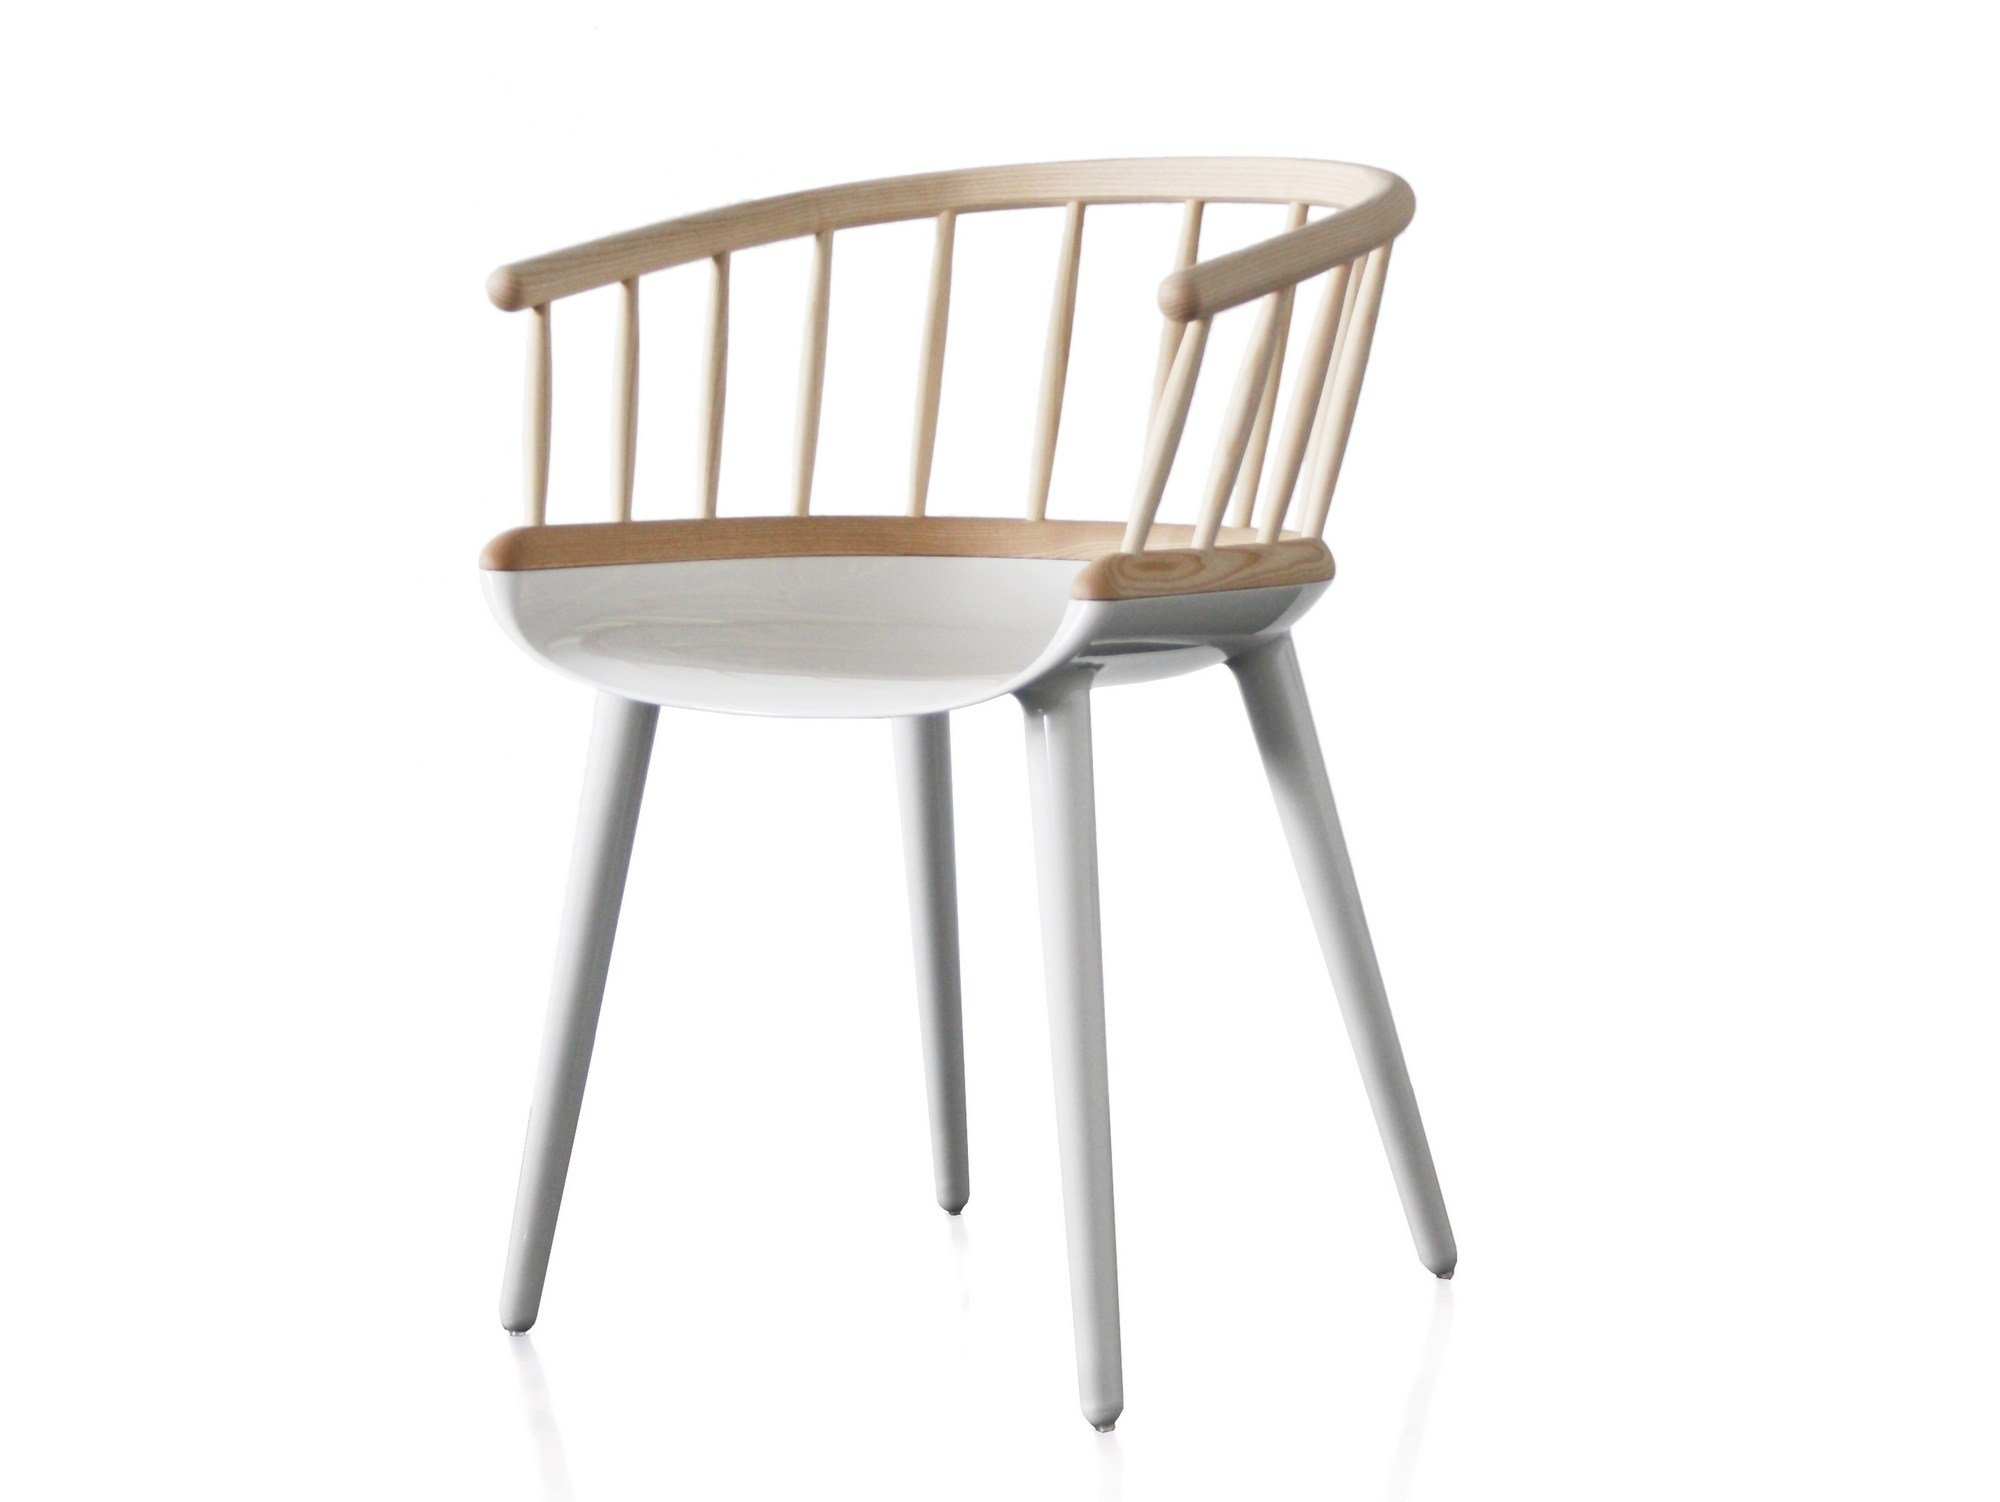 Multi layer wood chair with armrests cyborg stick cyborg for Magis chair